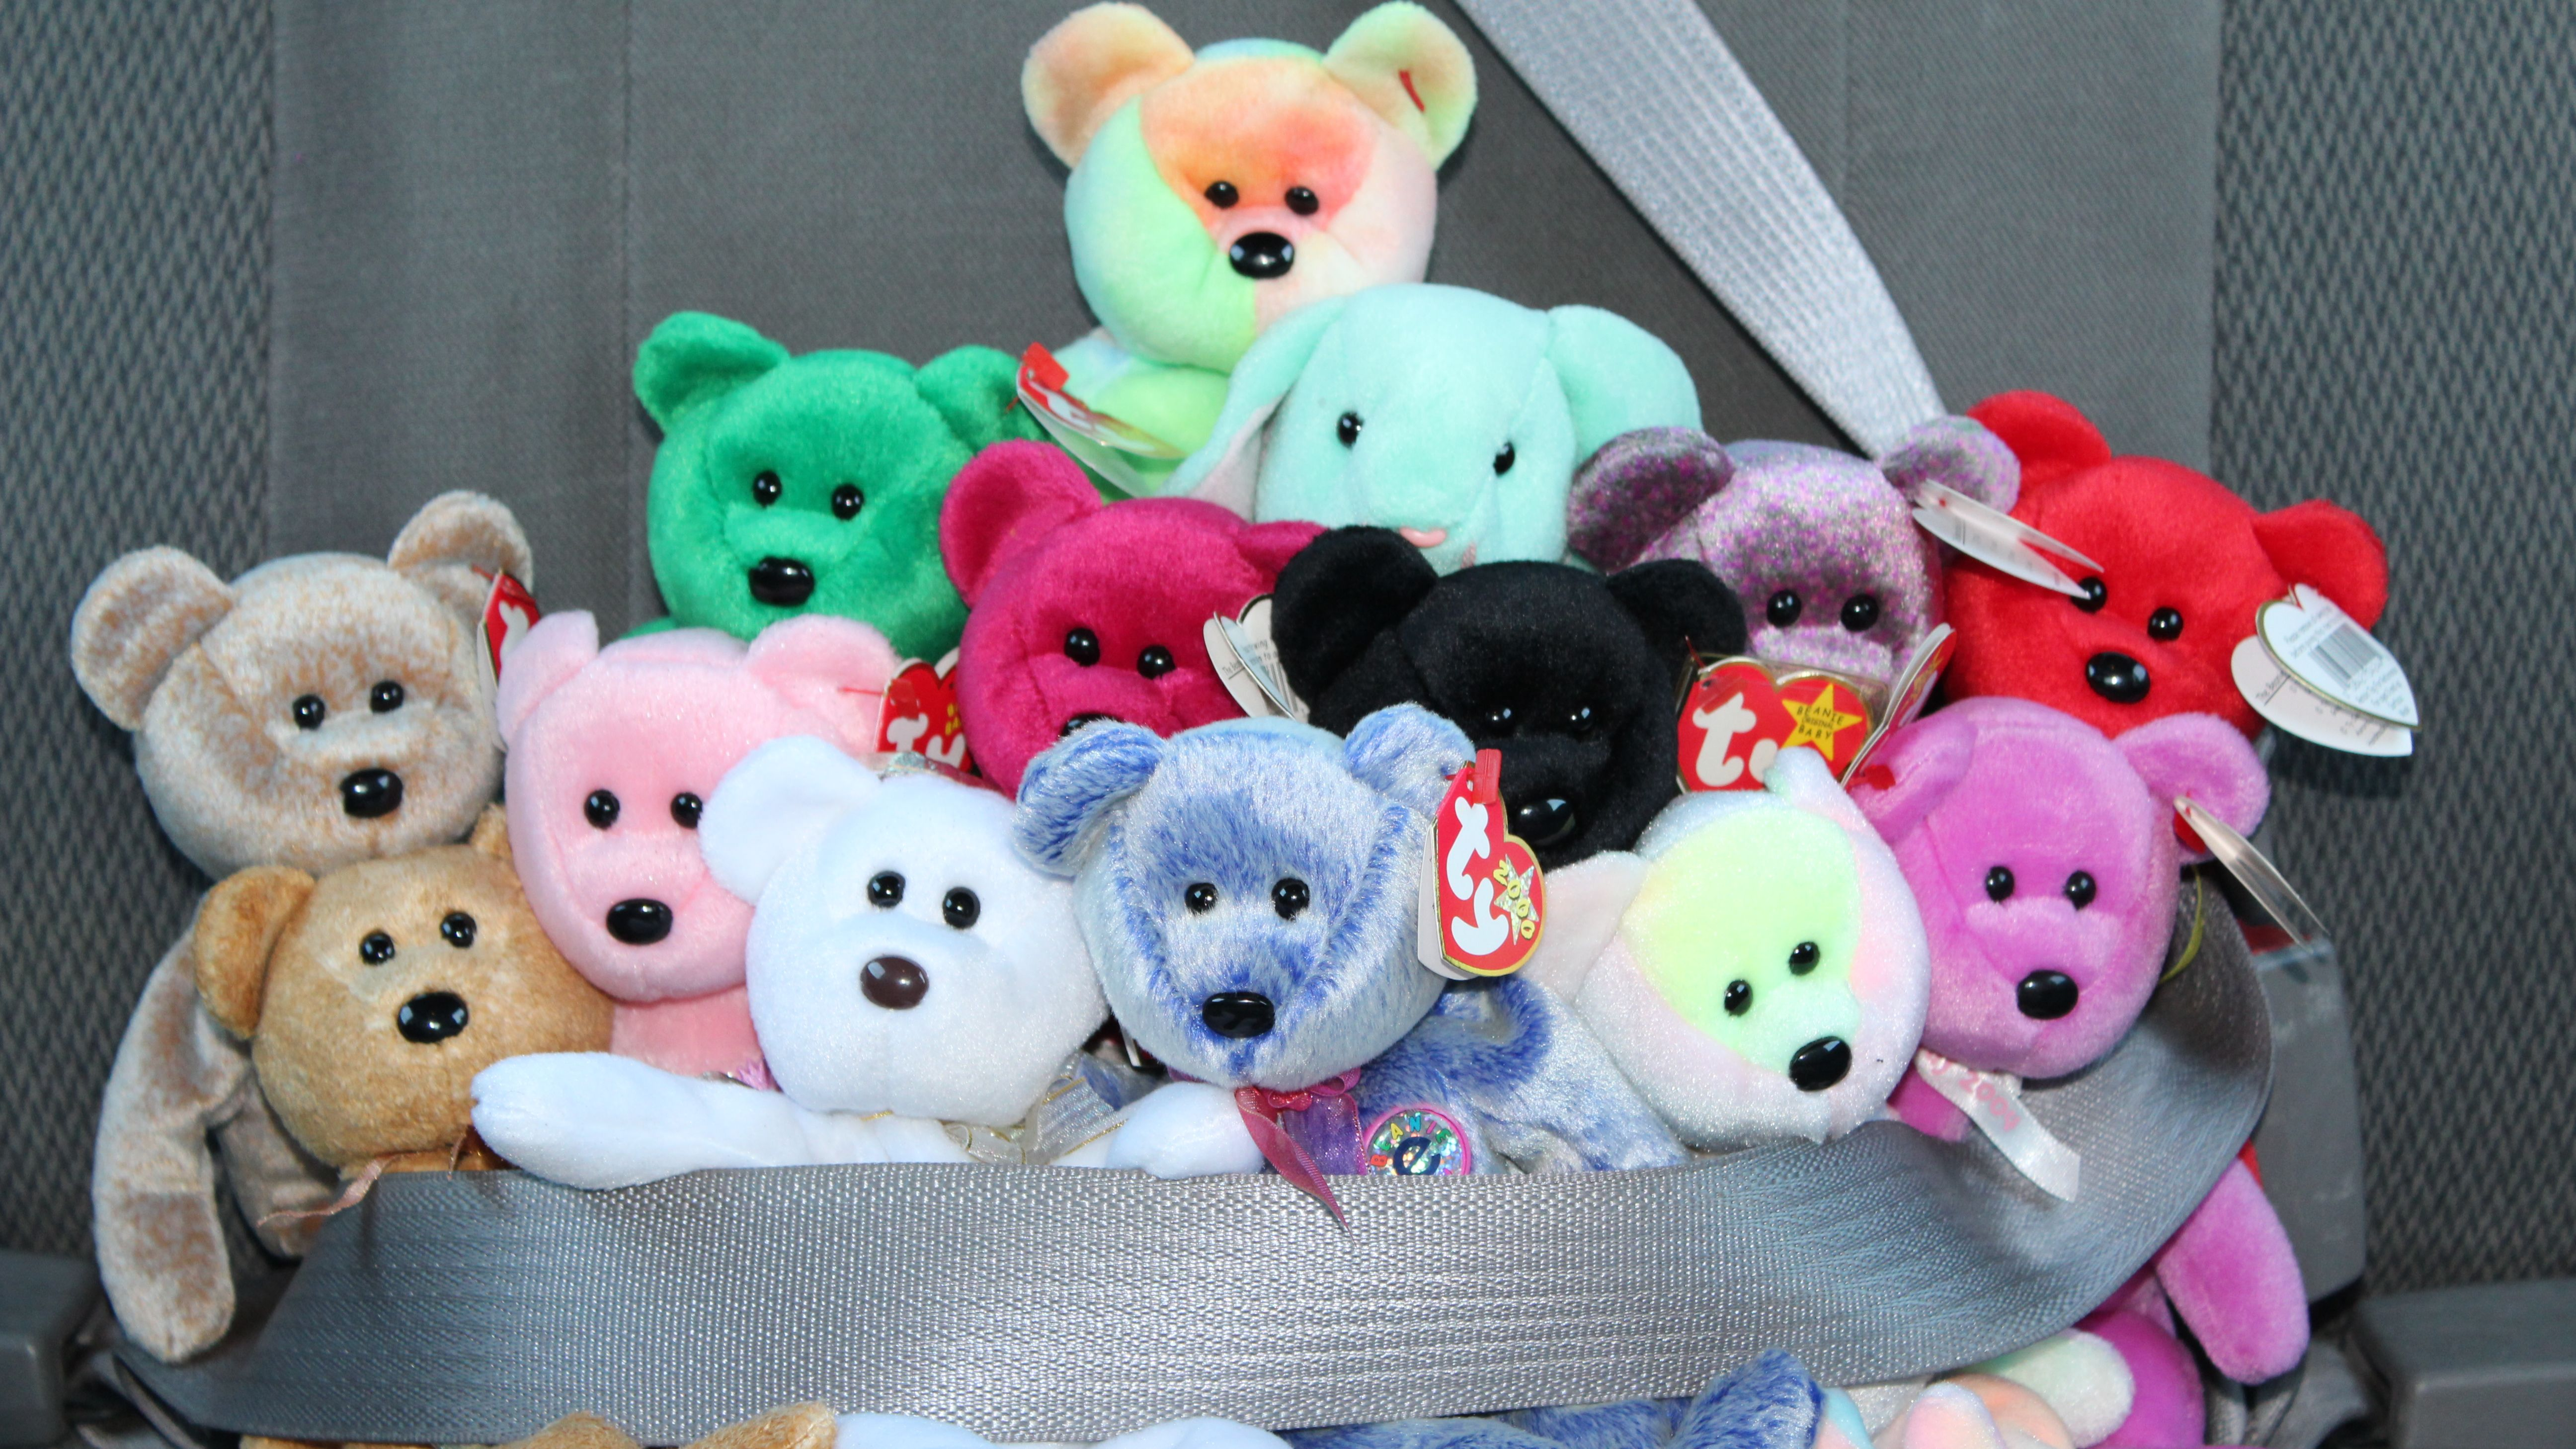 photo regarding Beanie Baby Checklist Printable called The 10 Greatest Rewarding Beanie Toddlers That Could possibly Be Hiding within just